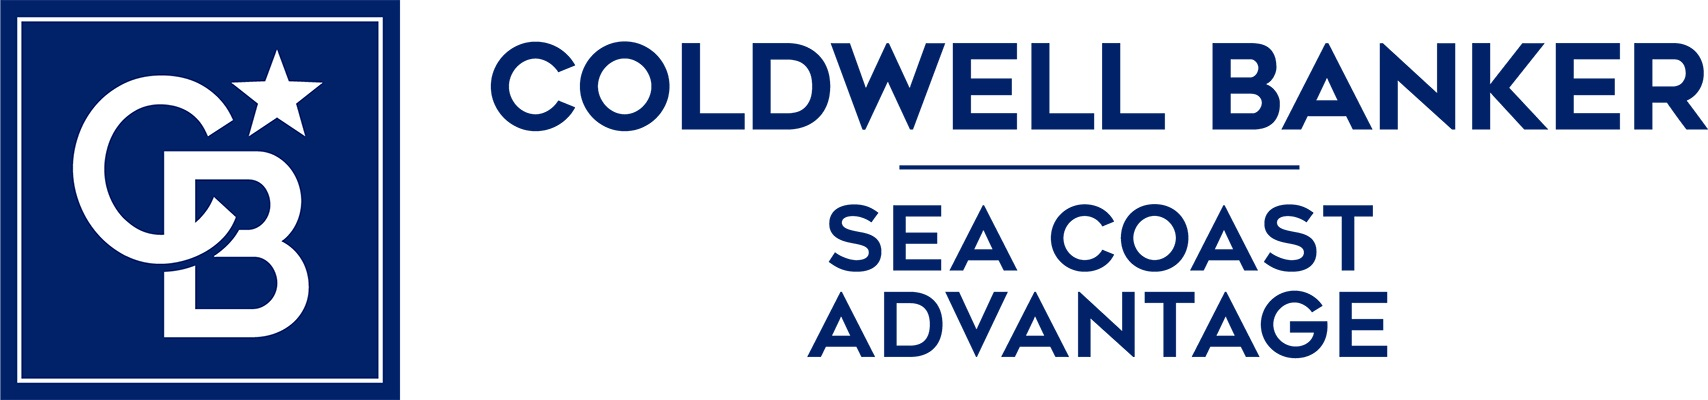 Donna Chase - Coldwell Banker Sea Coast Advantage Realty